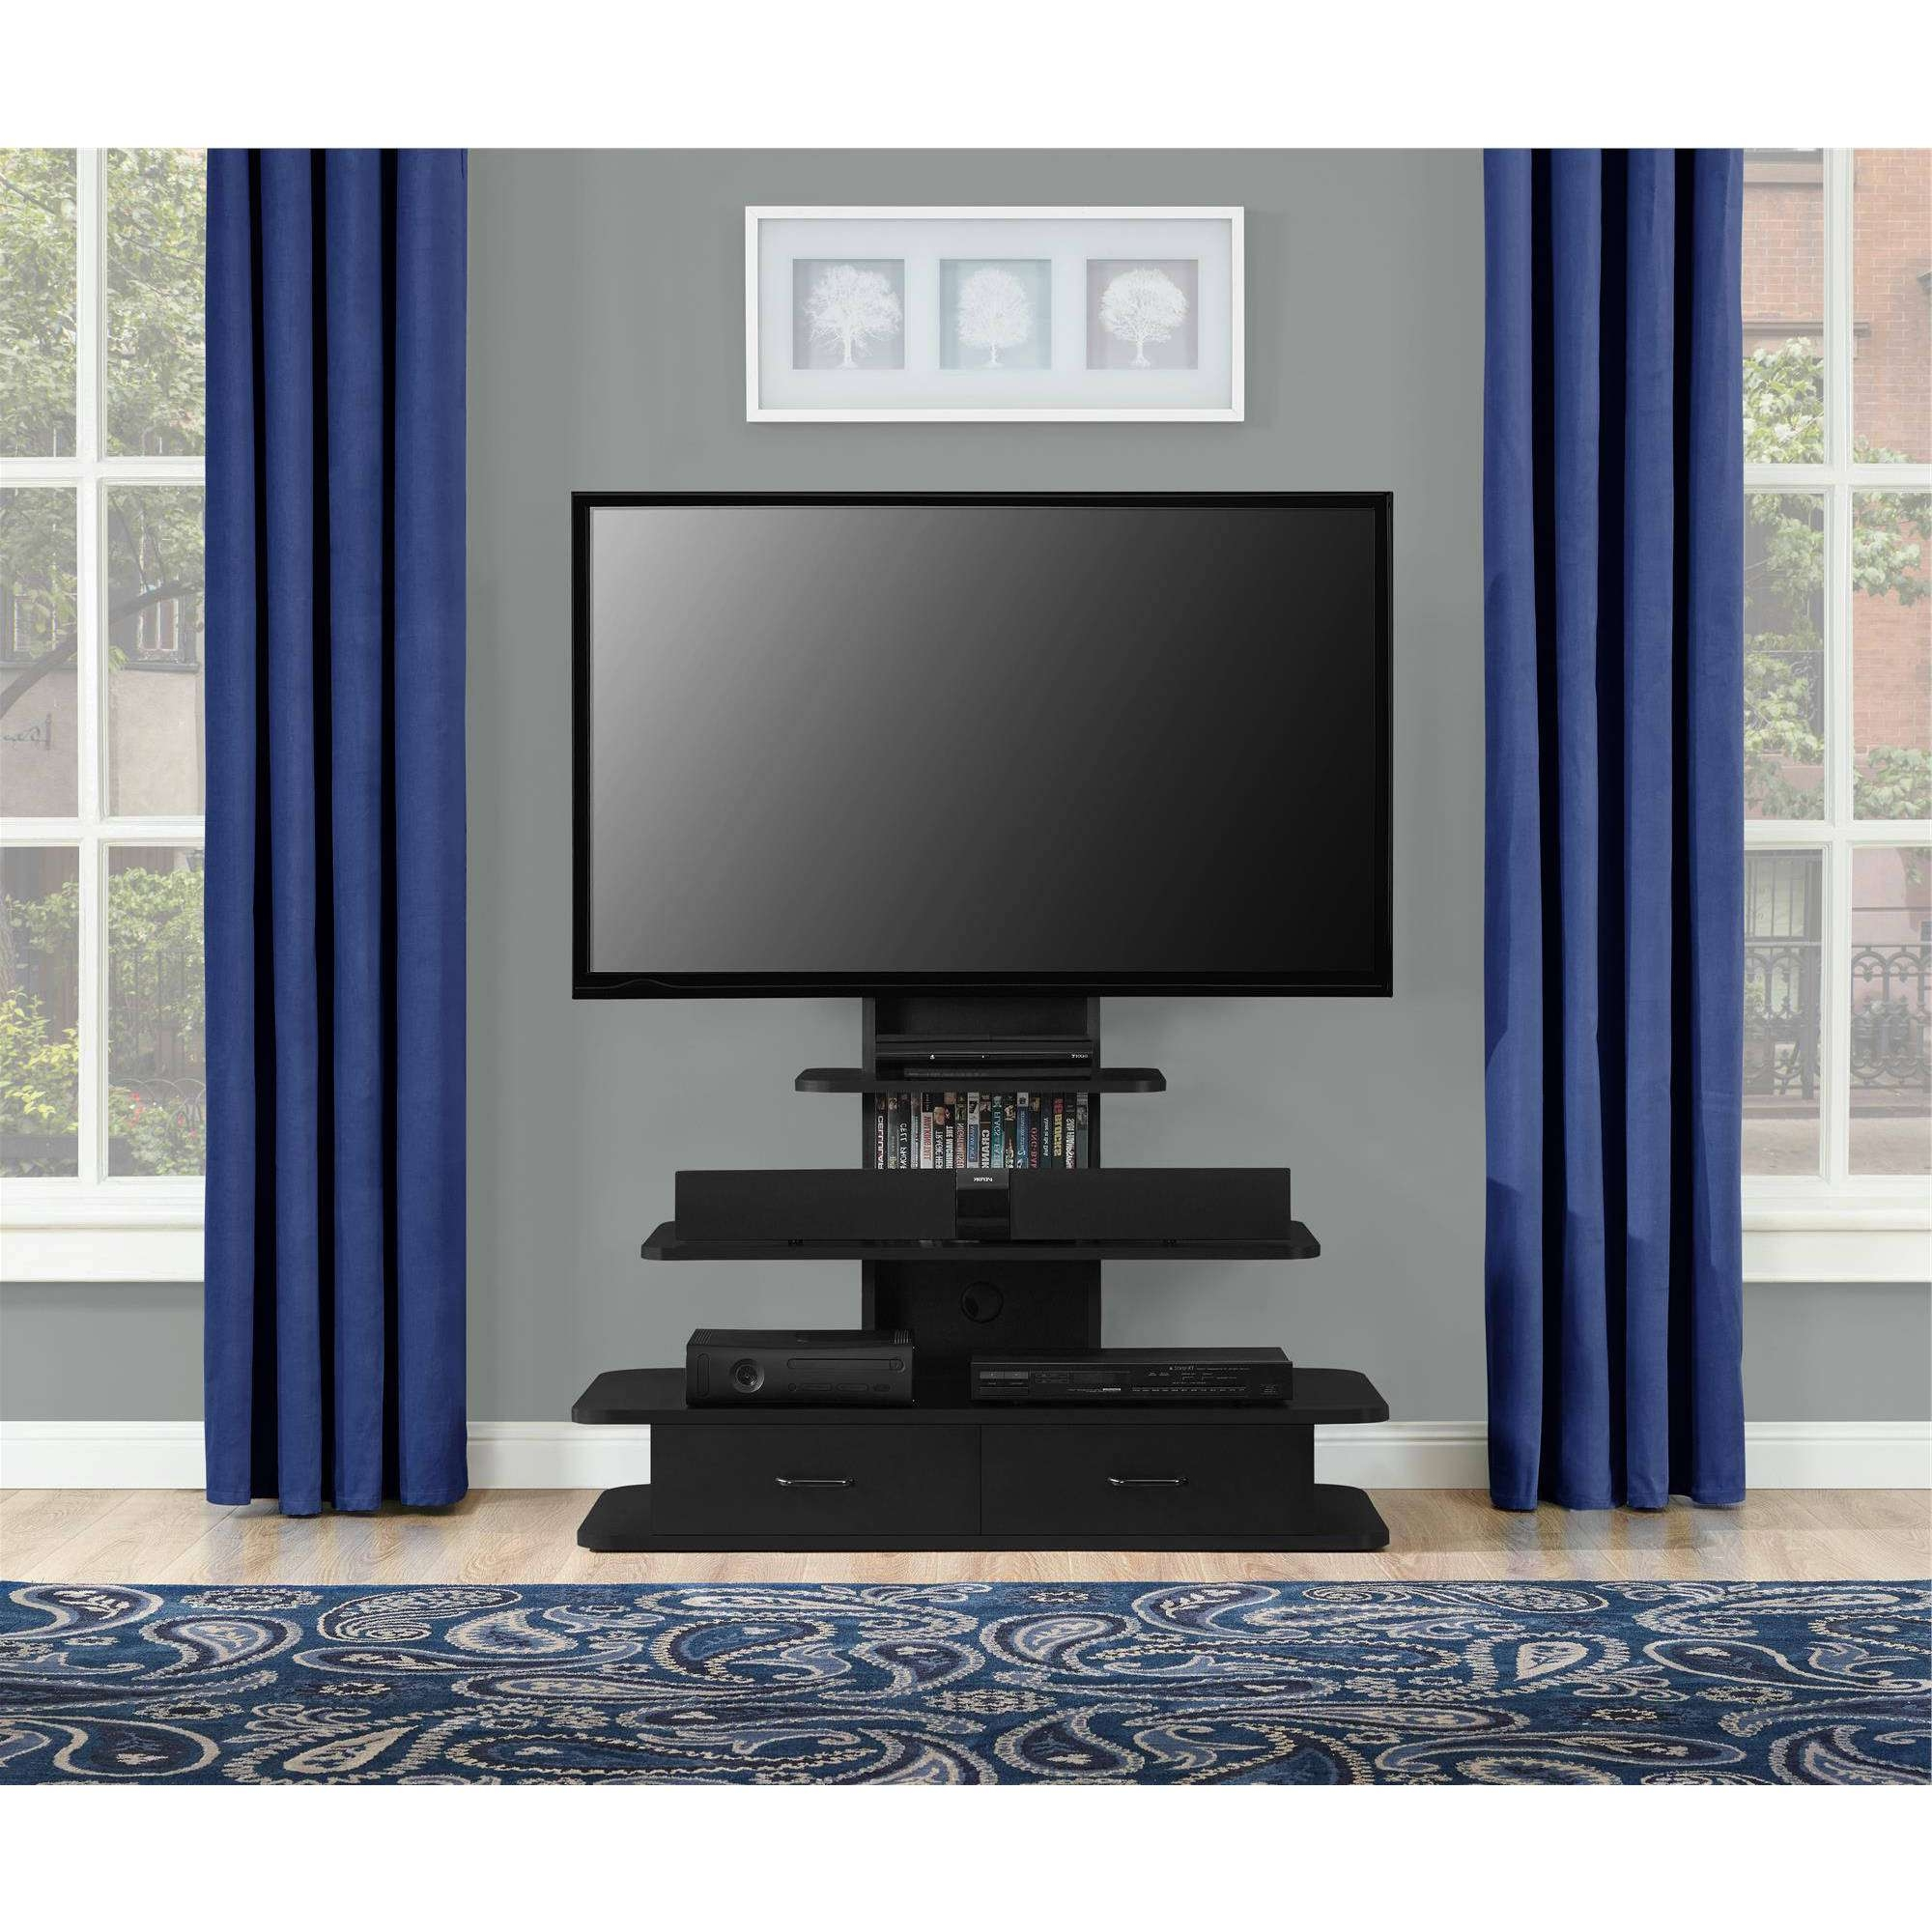 Ameriwood Home Galaxy Xl Tv Stand With Drawers For Tvs Up To 70 Throughout Tv Stands For 70 Inch Tvs (View 12 of 15)